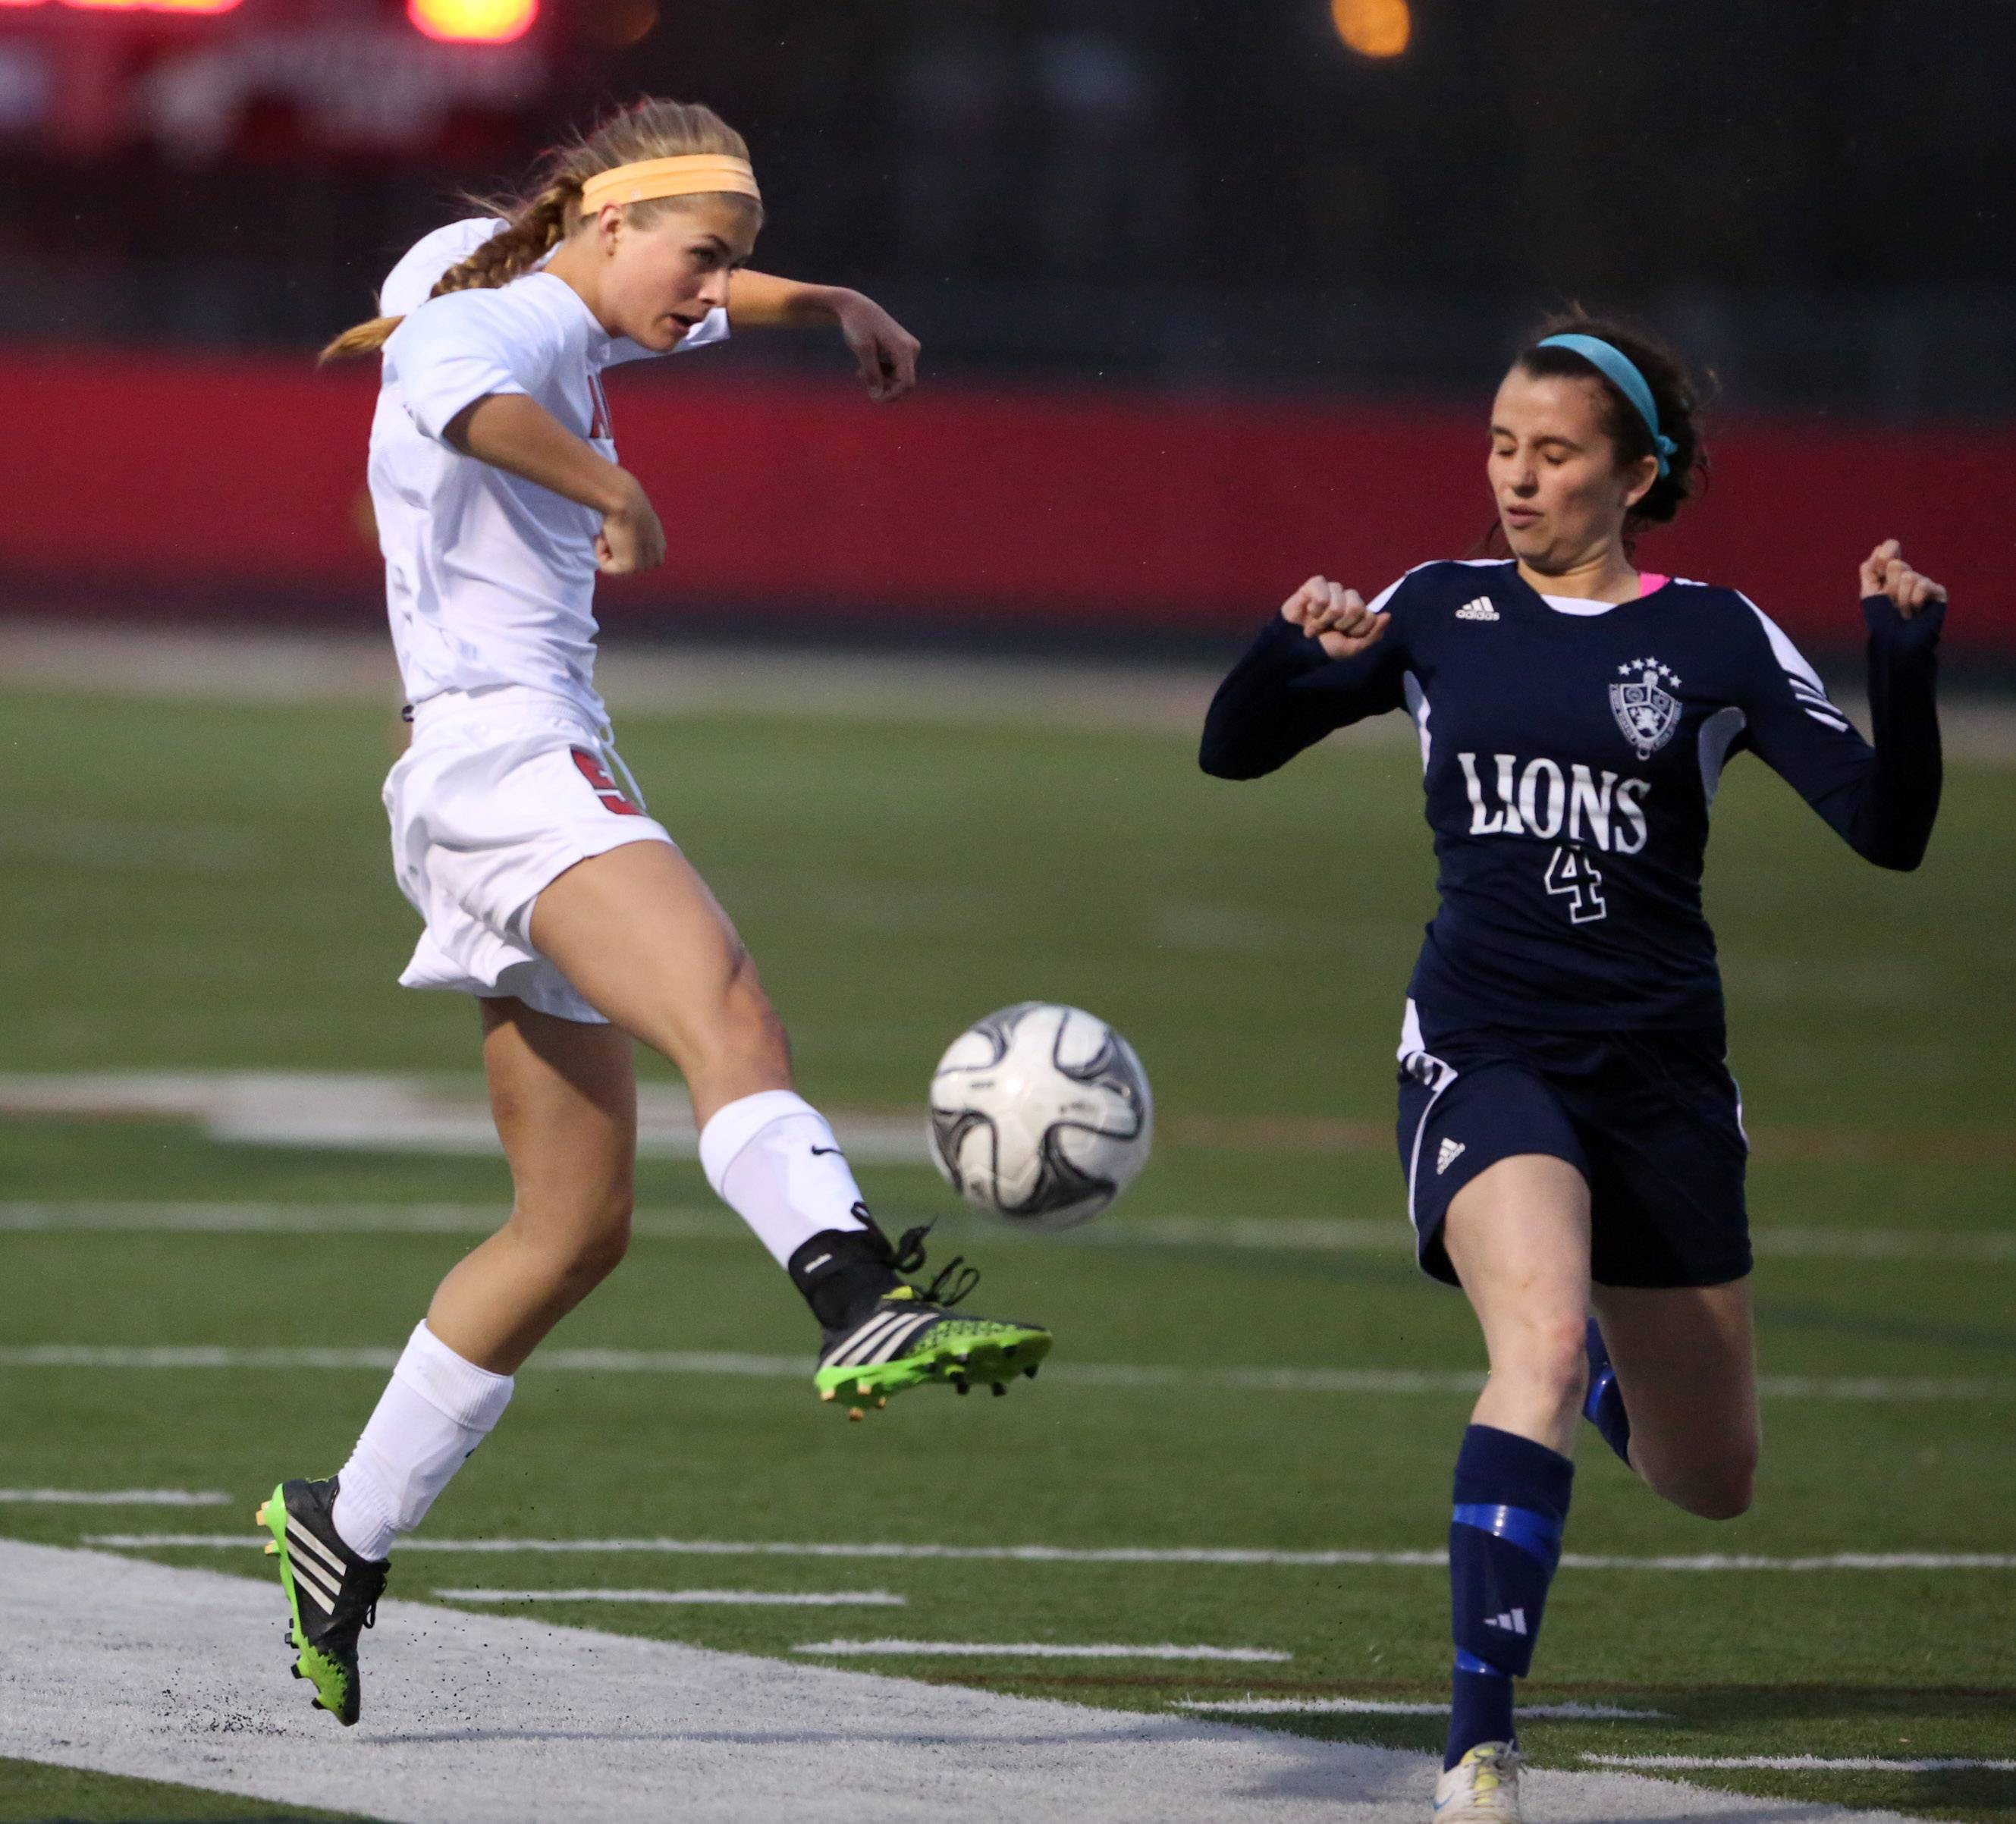 Barrington's Jackie Batliner passes the ball as St. Viator's Susie Moynihan cuts across the passing lane on Thursday in Barrington.